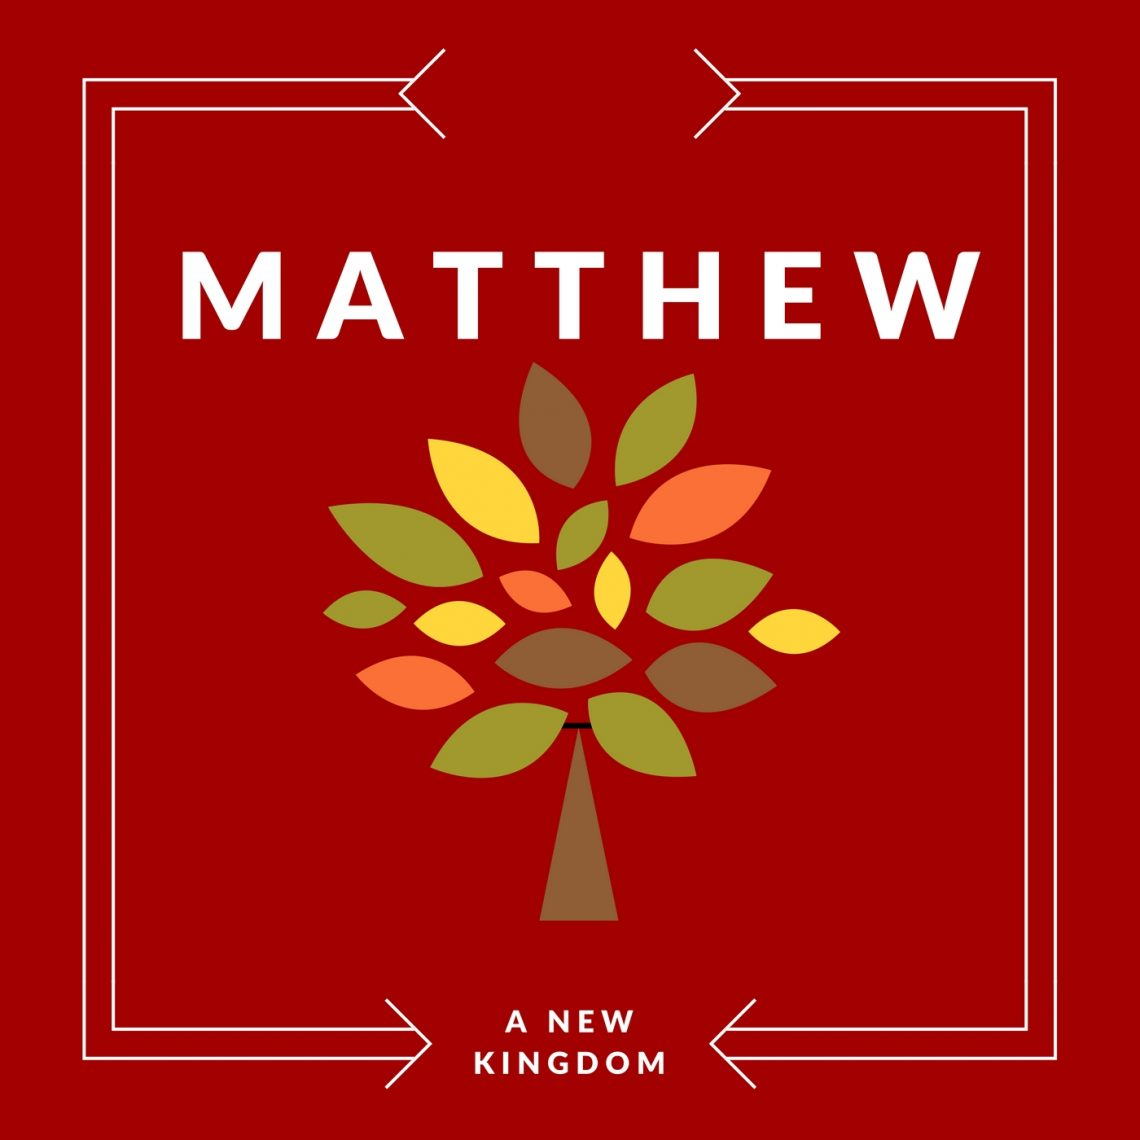 Matthew 13 | Weeds and Wheats